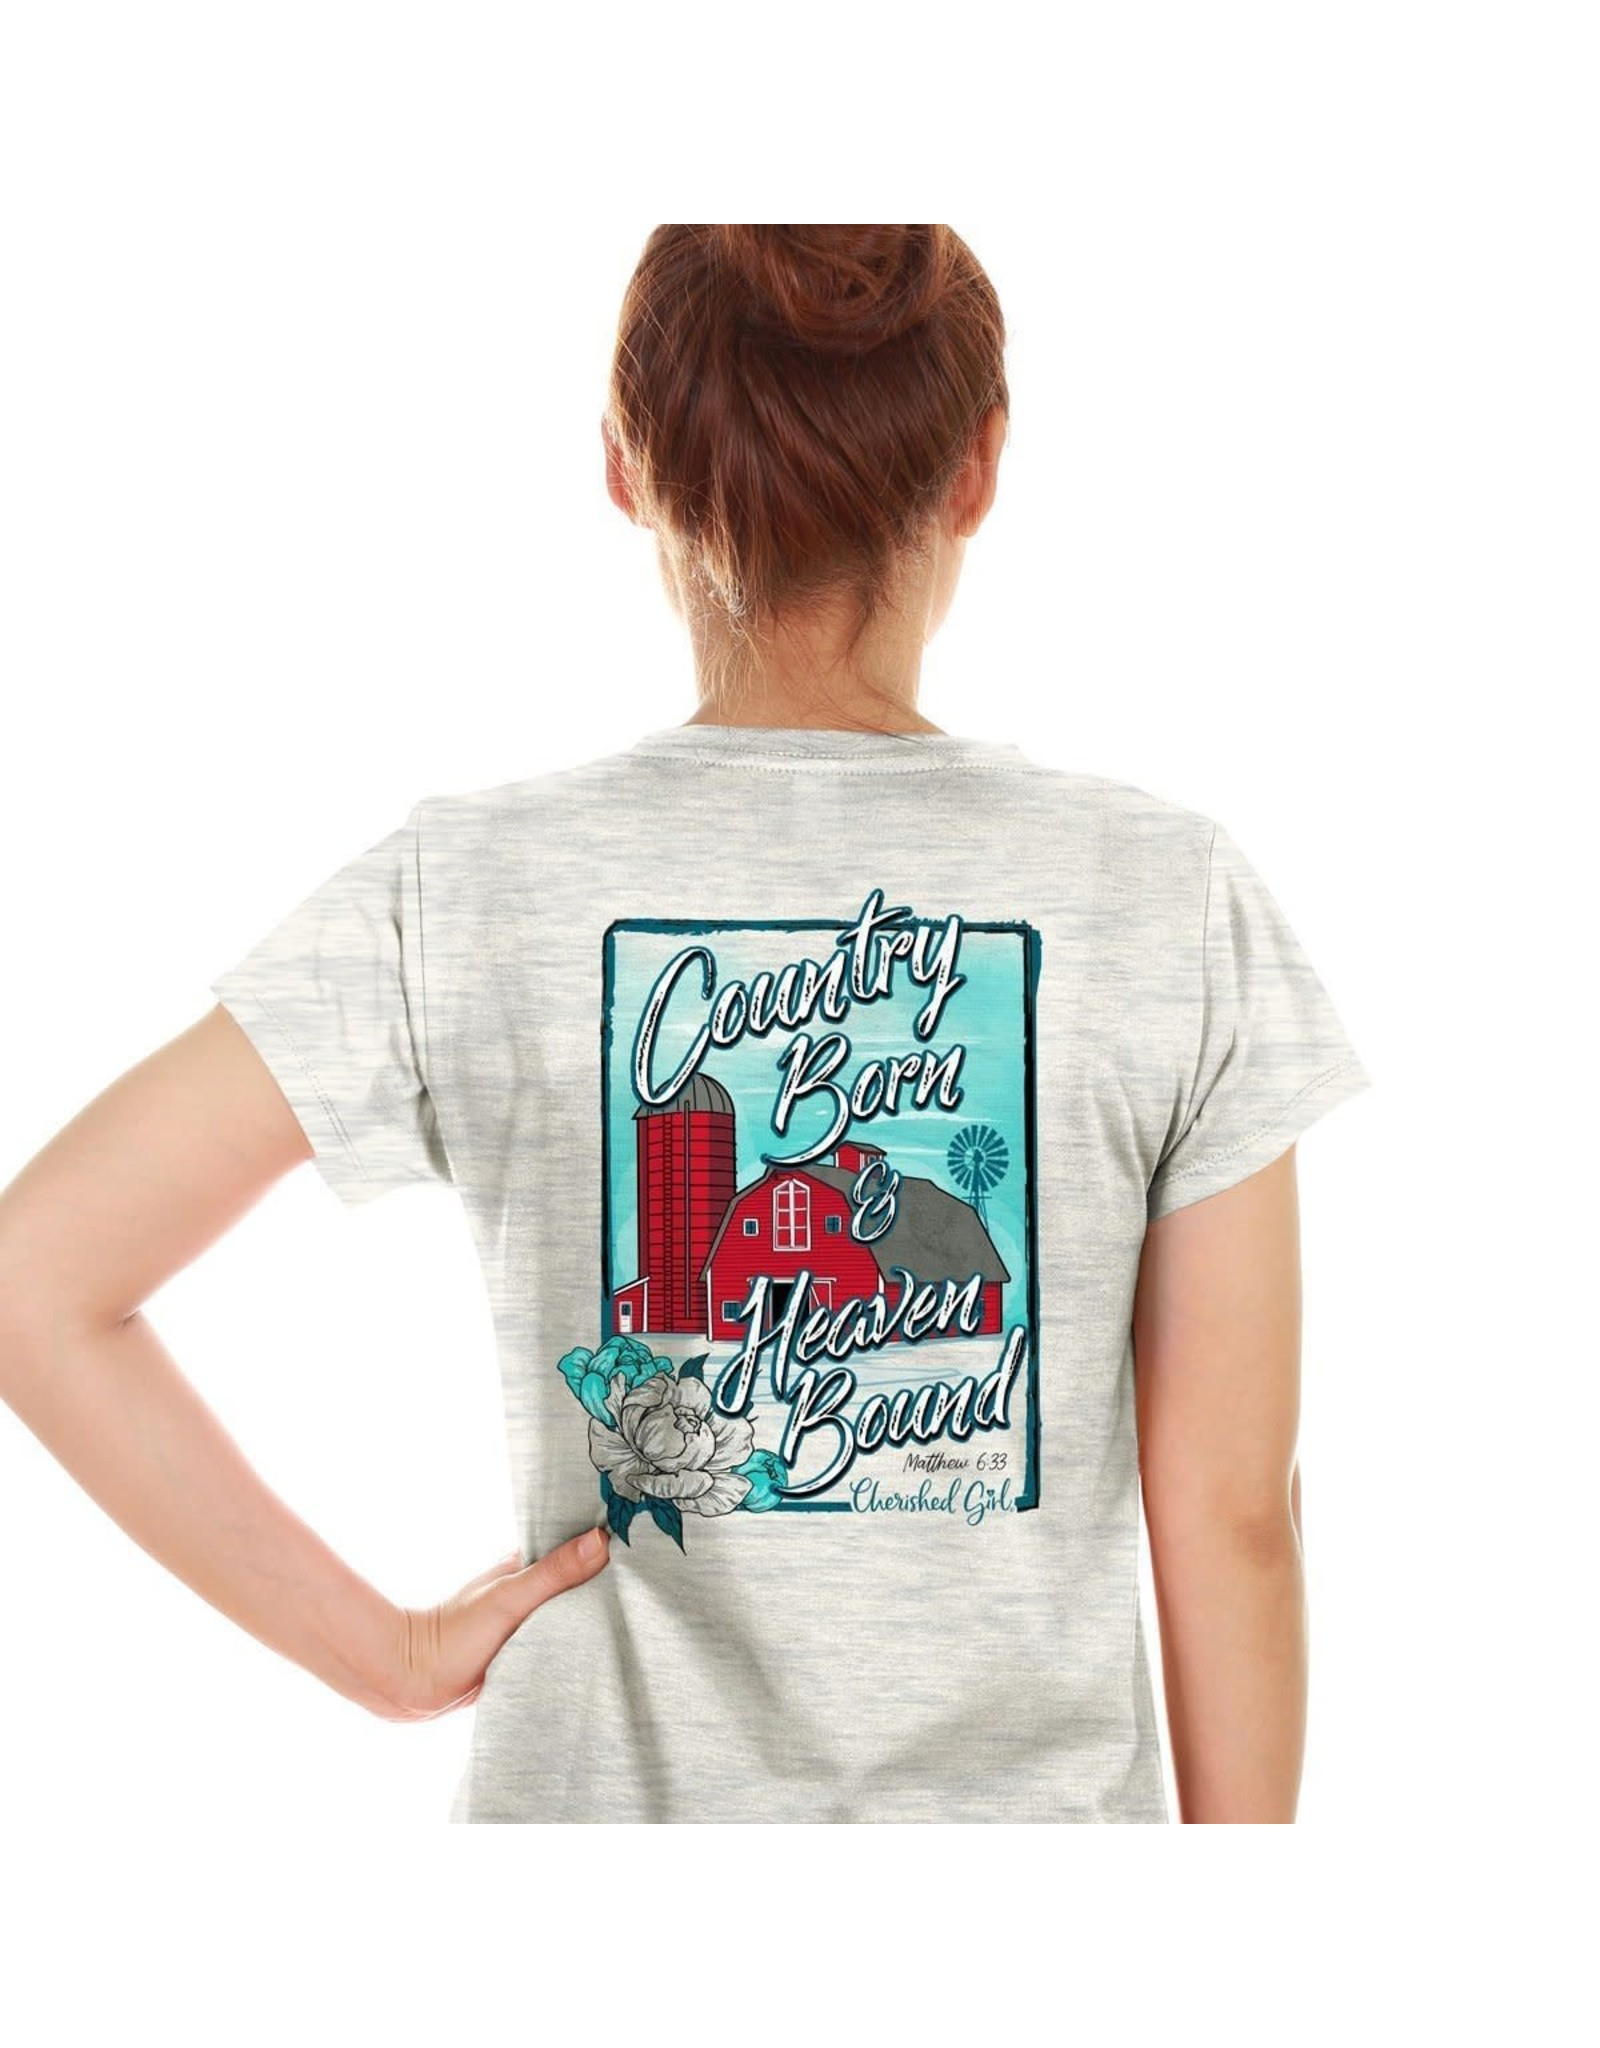 Adult Shirt - Country Born & Heaven Bound